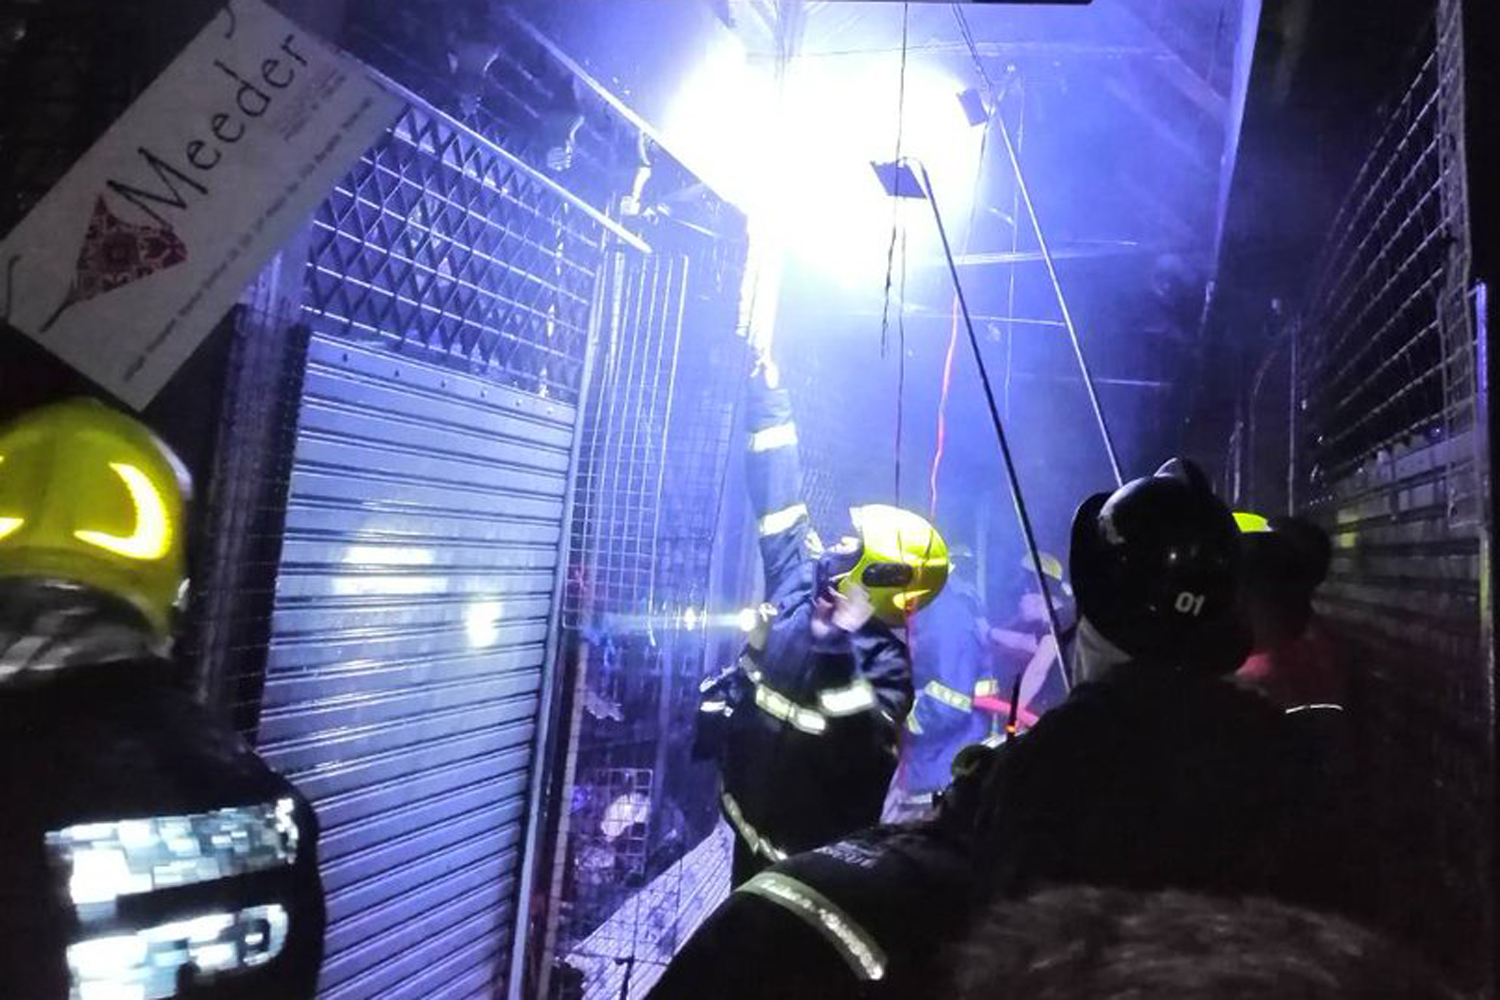 Firefighters try to control the fire at Chatuchak market on Sunday night. (Photo from ศูนย์ข่าวเคลื่อนที่เร็ว, 123คนมีน้ำใจ via @js100radio Twitter account)